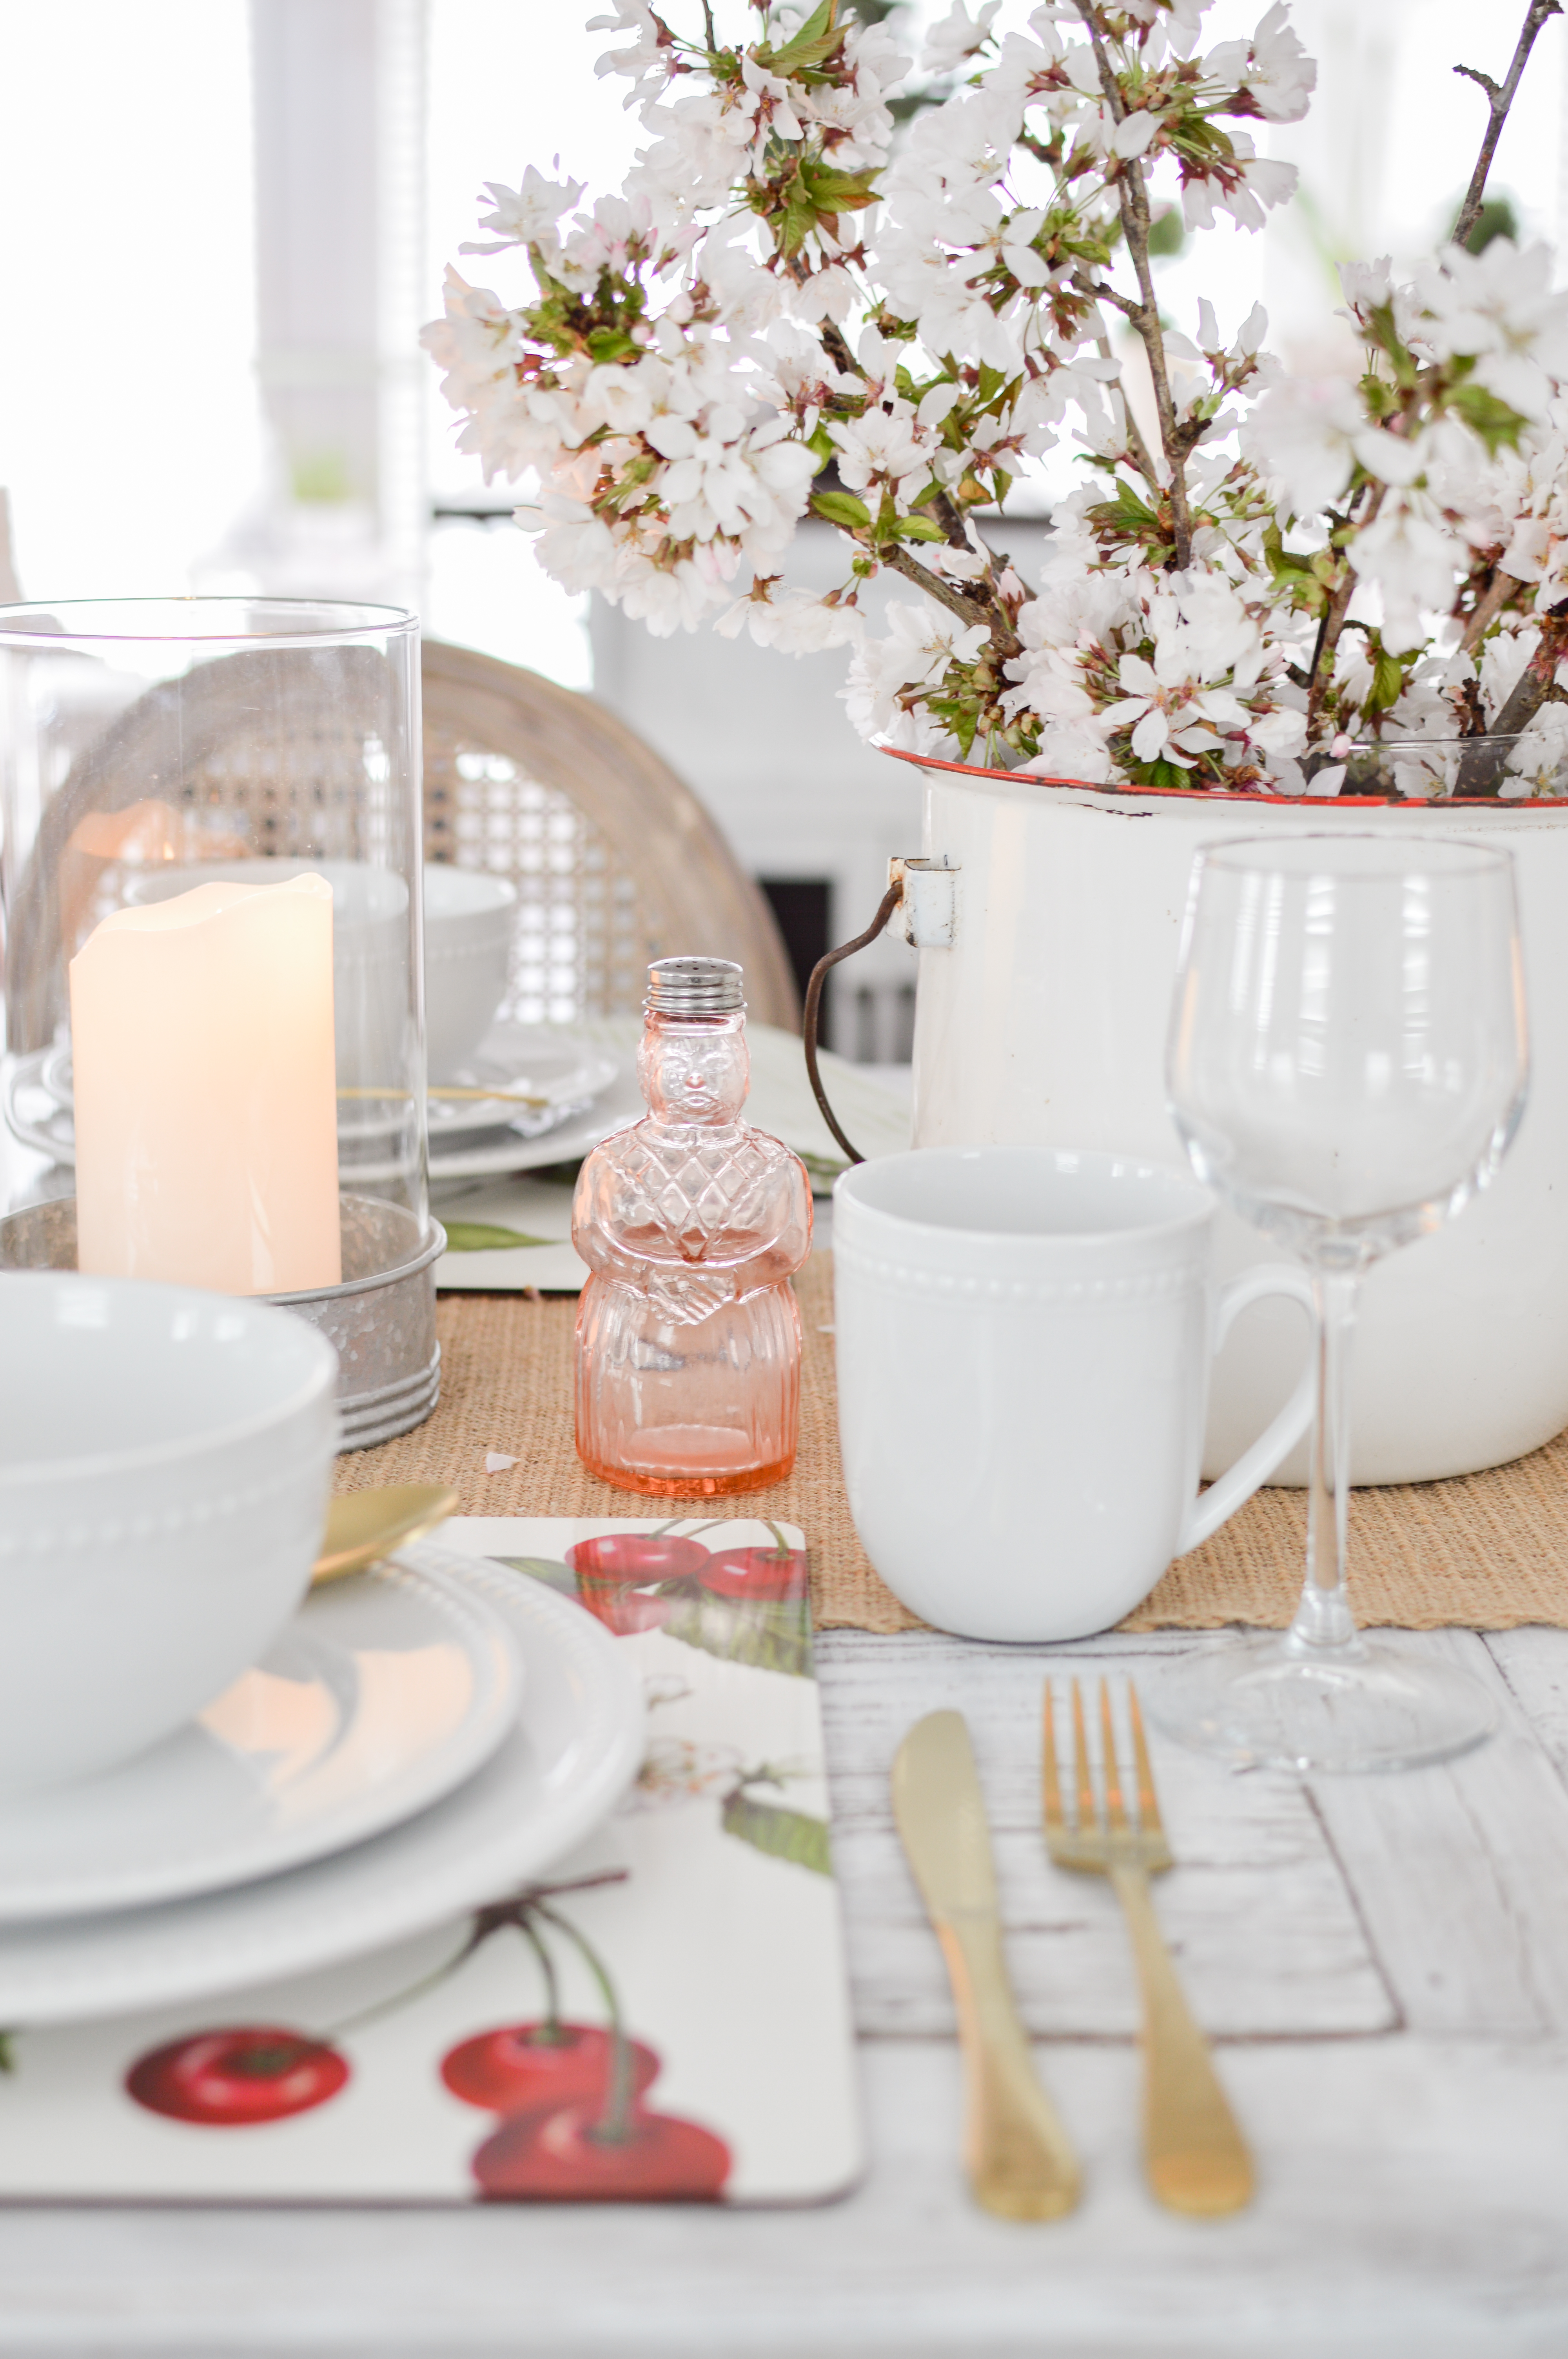 Cottage Farmhouse Farm Table Setting with Cherry Blossoms for Spring